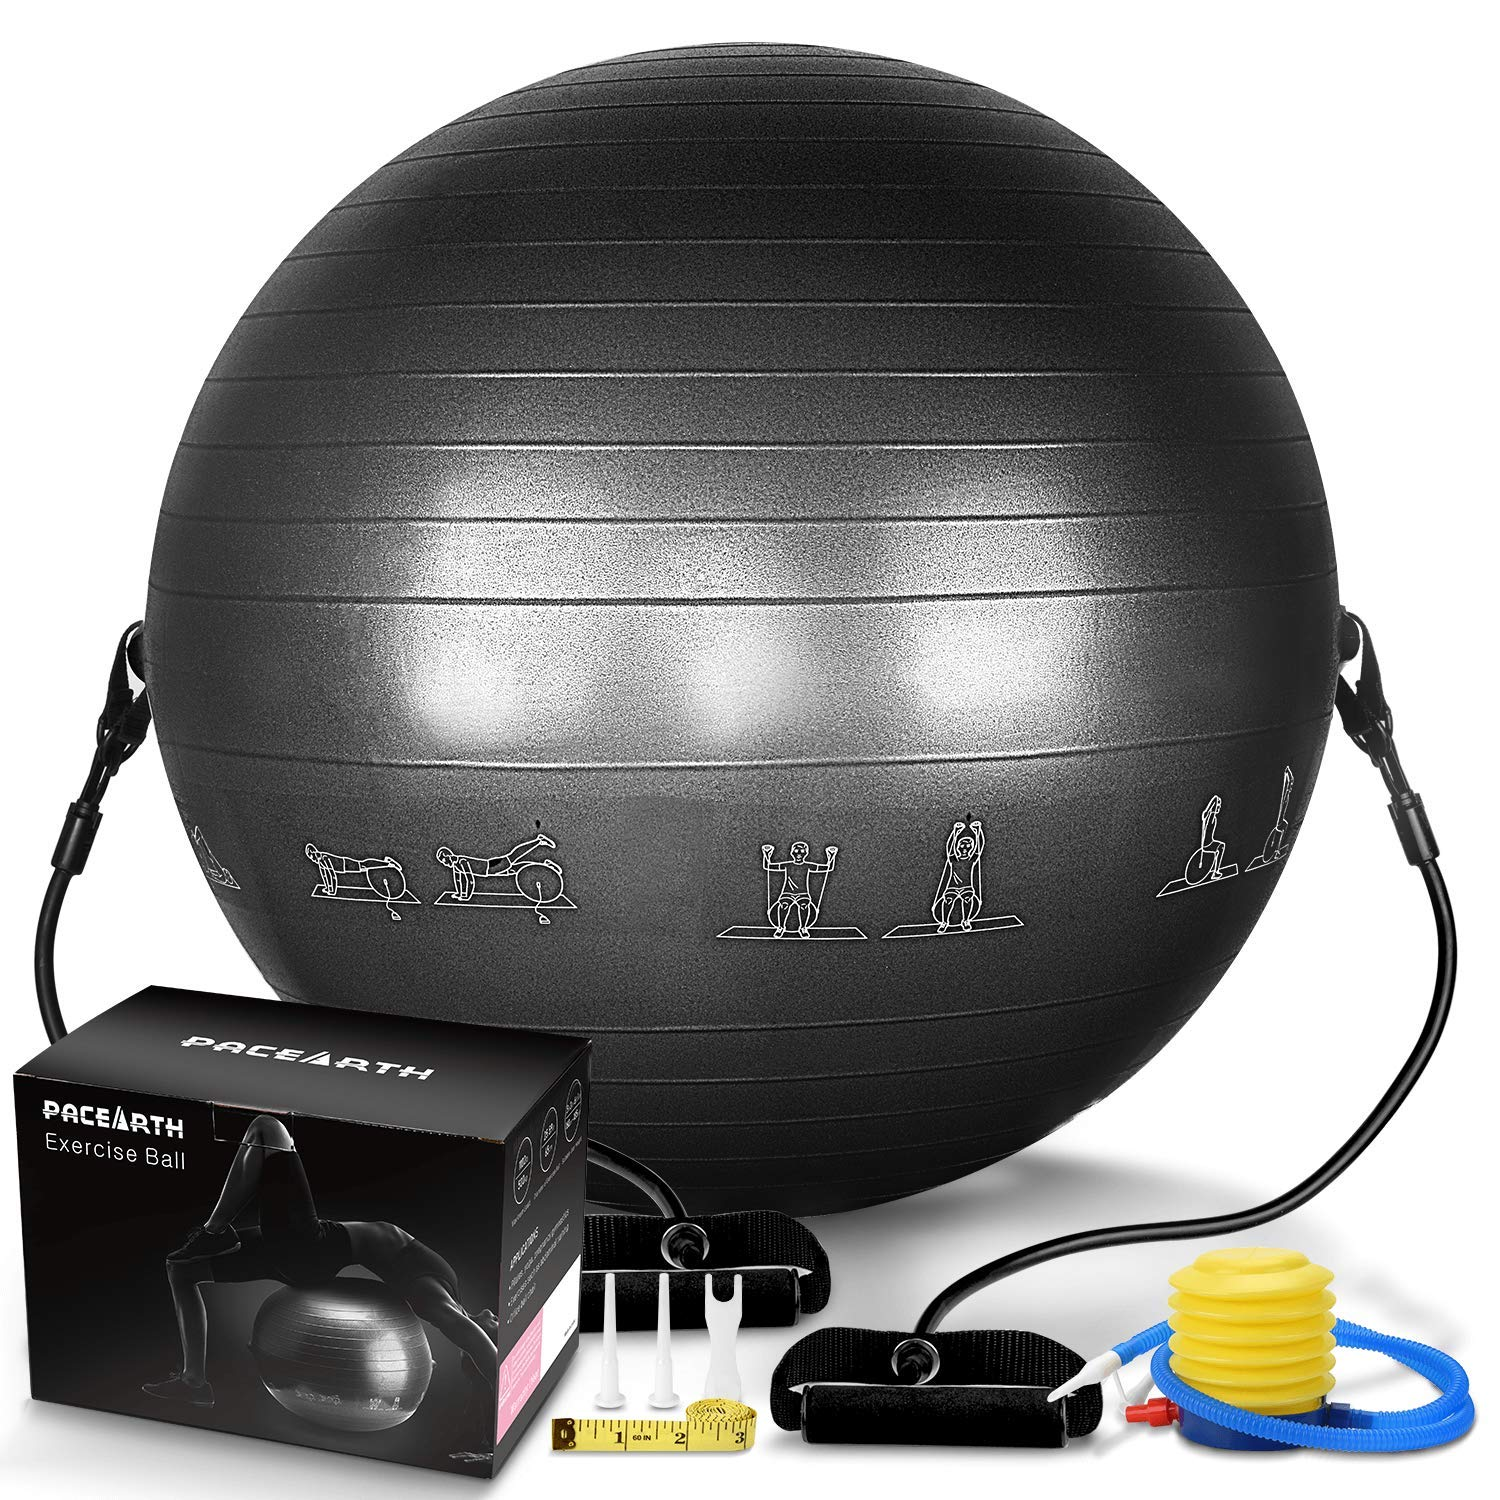 PACEARTH Exercise Ball for Yoga Stability Fitness Balance Birthing Workout Ball Chair with Quick Pump and Resistance Bands for Office,Home,Gym